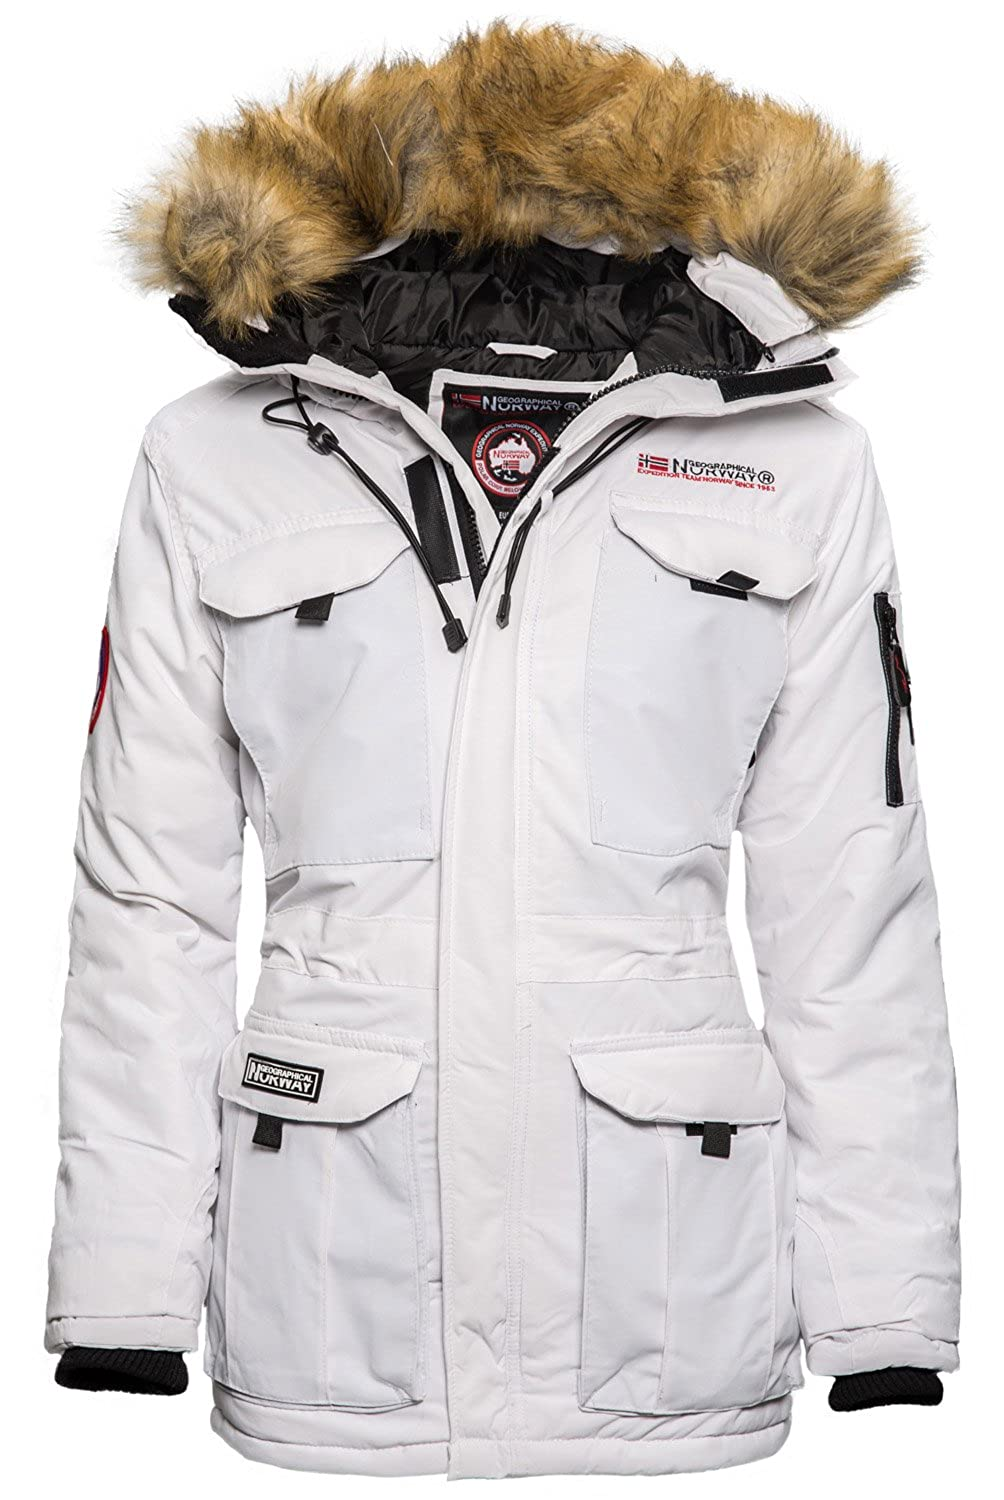 Geographical Norway Alcatras Damen Winter Jacke Parka Outdoor Funktions Mantel jetzt kaufen